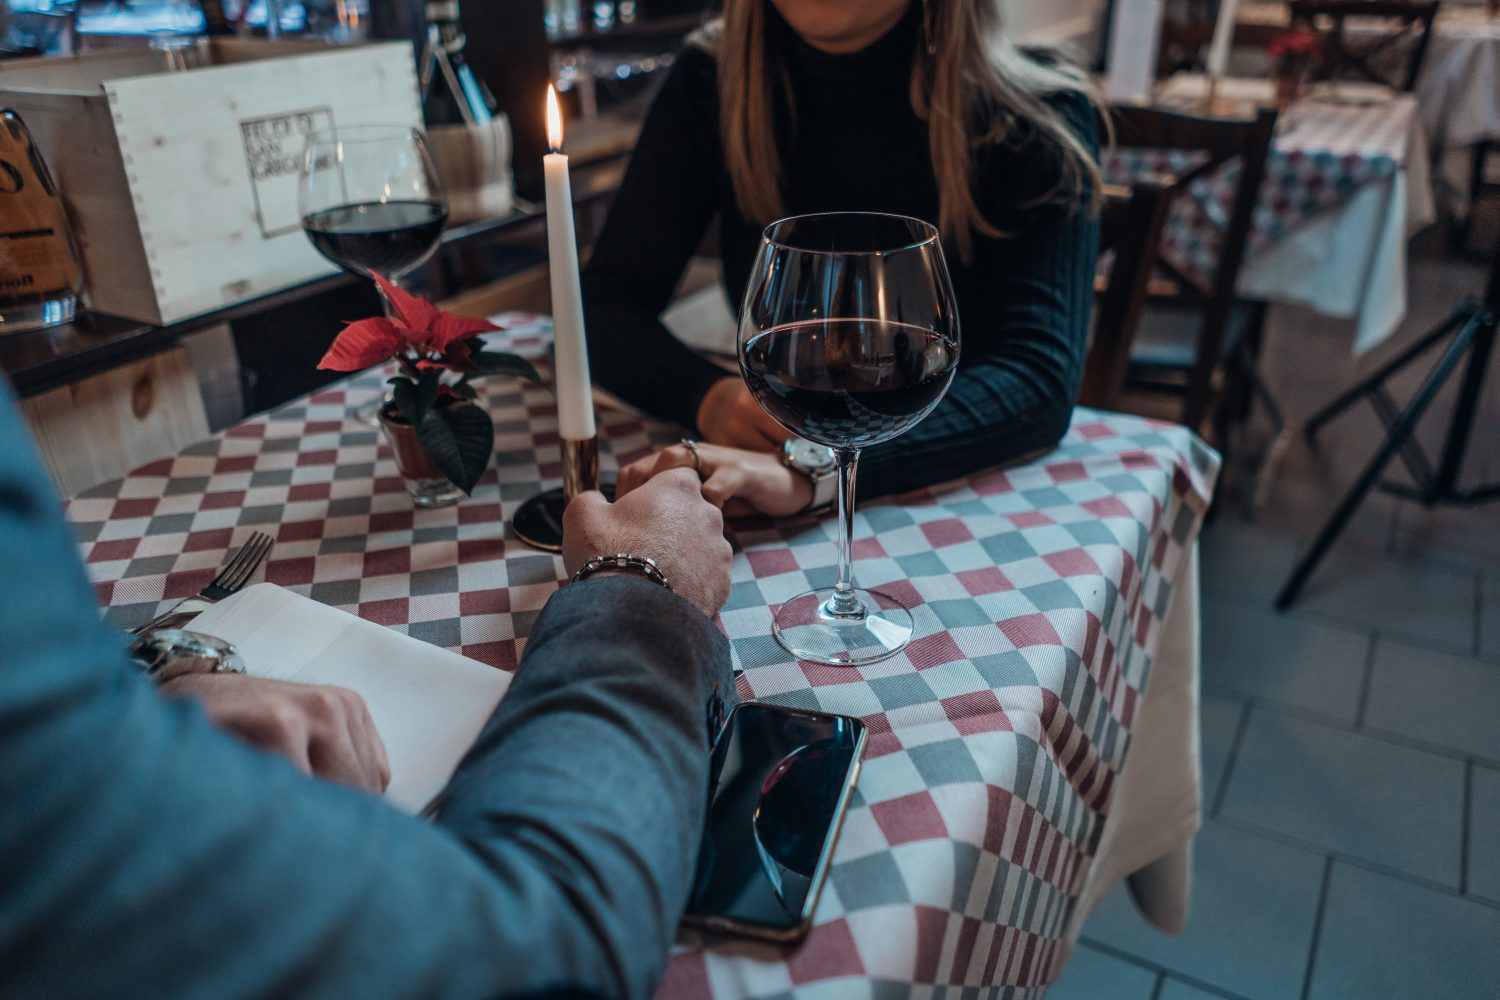 casual dating 101: the definition, rules, and motivations